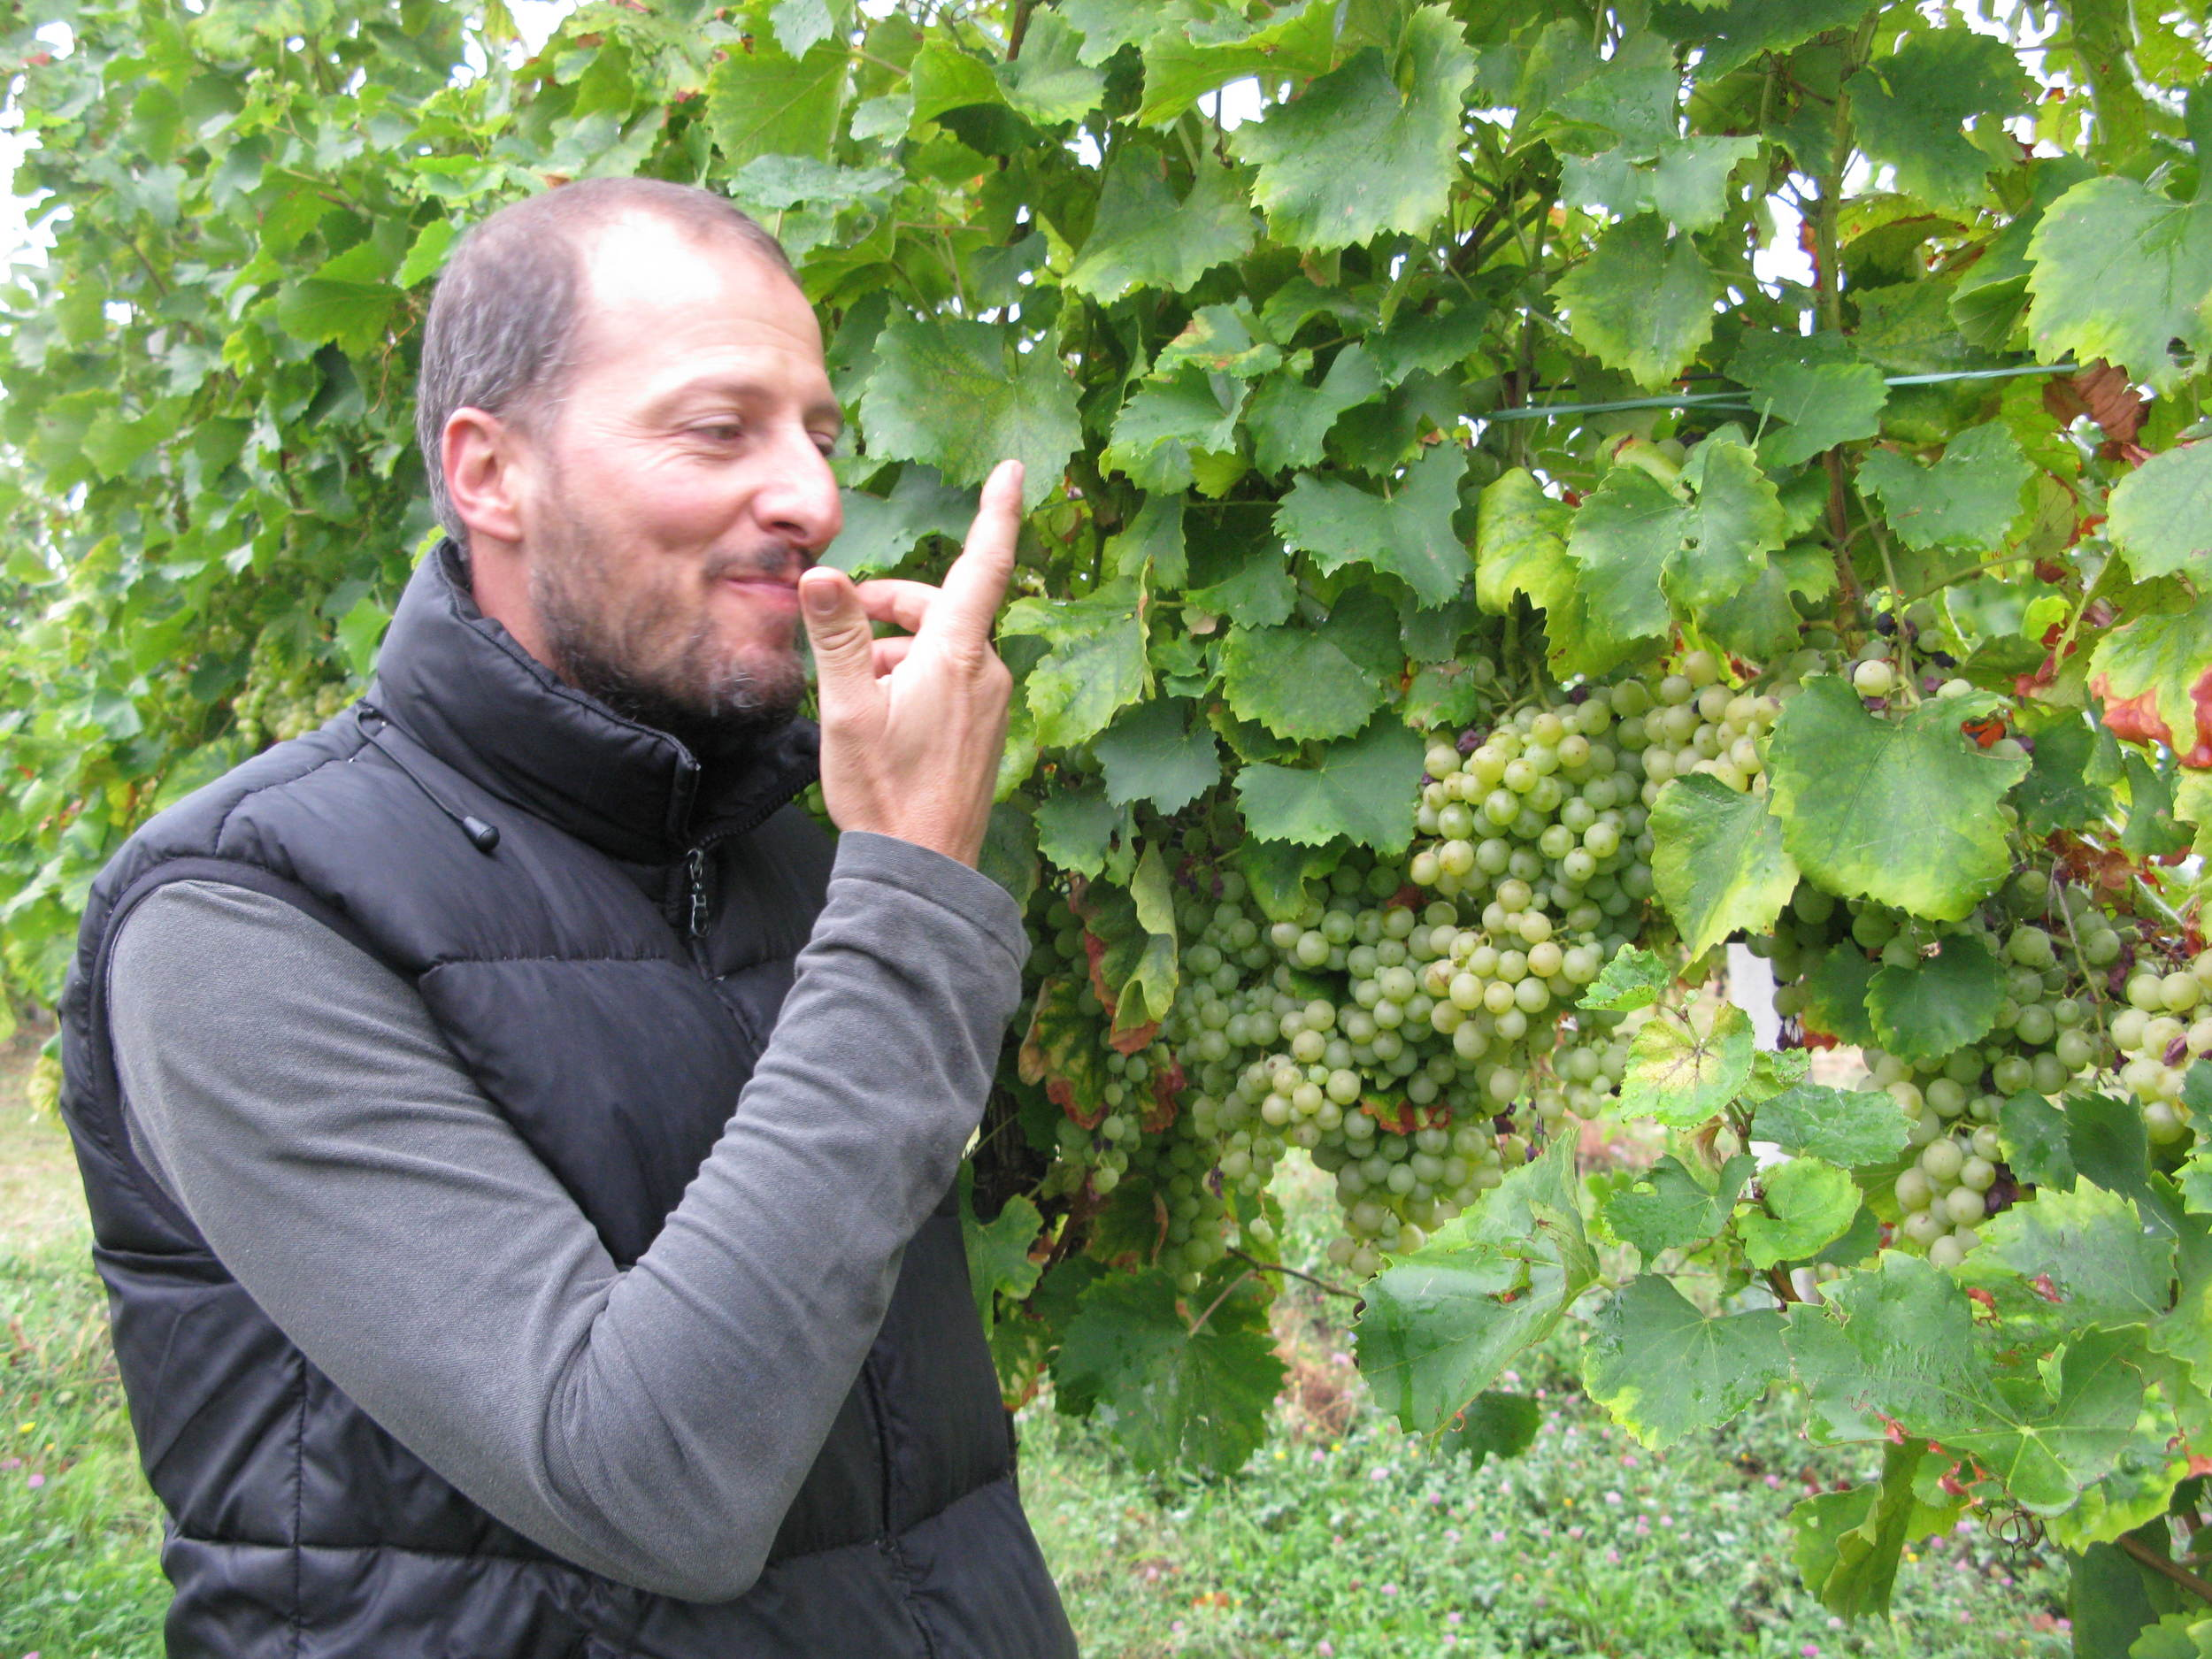 Winemaker Claudio Ancarani tastes the Famoso grapes he is helping to save